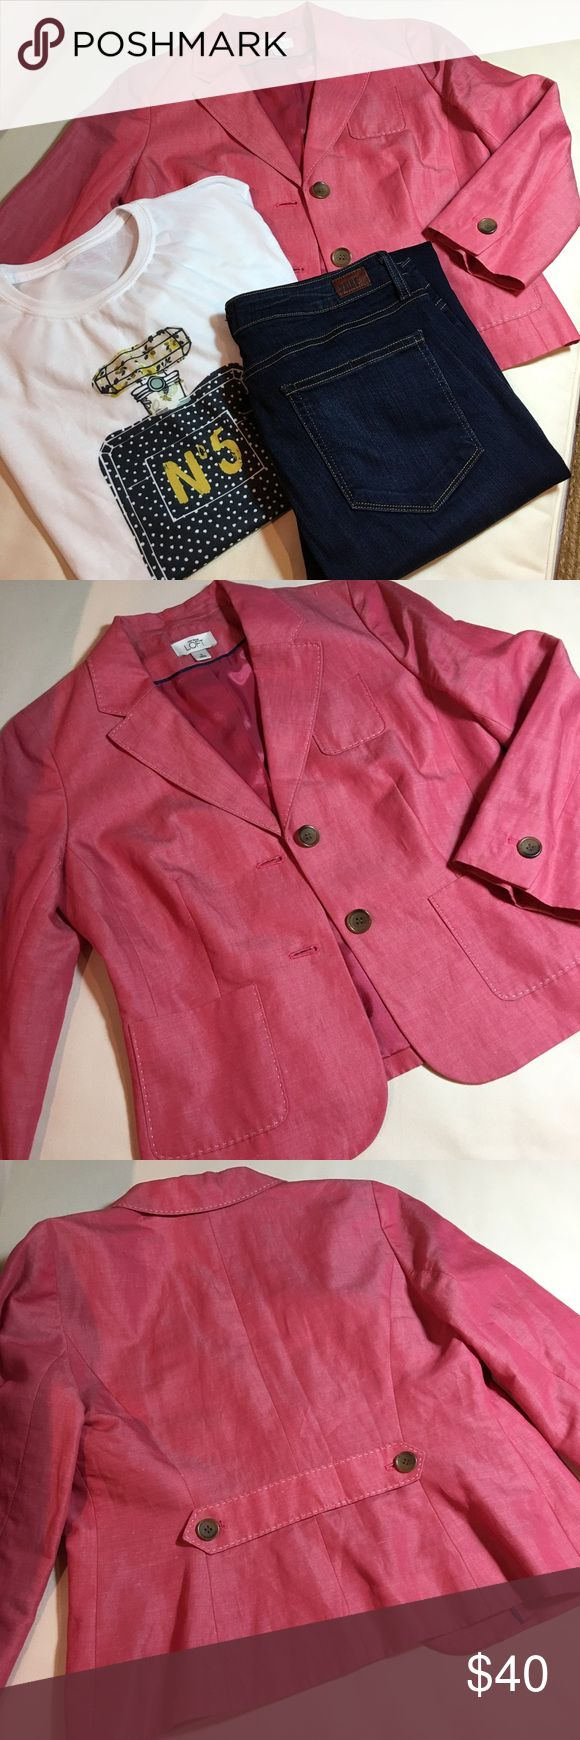 NWOT Anne Taylor LOFT blazer New condition. Salmon pink, lined blazer. 52% ramie. 48% cotton. LOFT Jackets & Coats Blazers